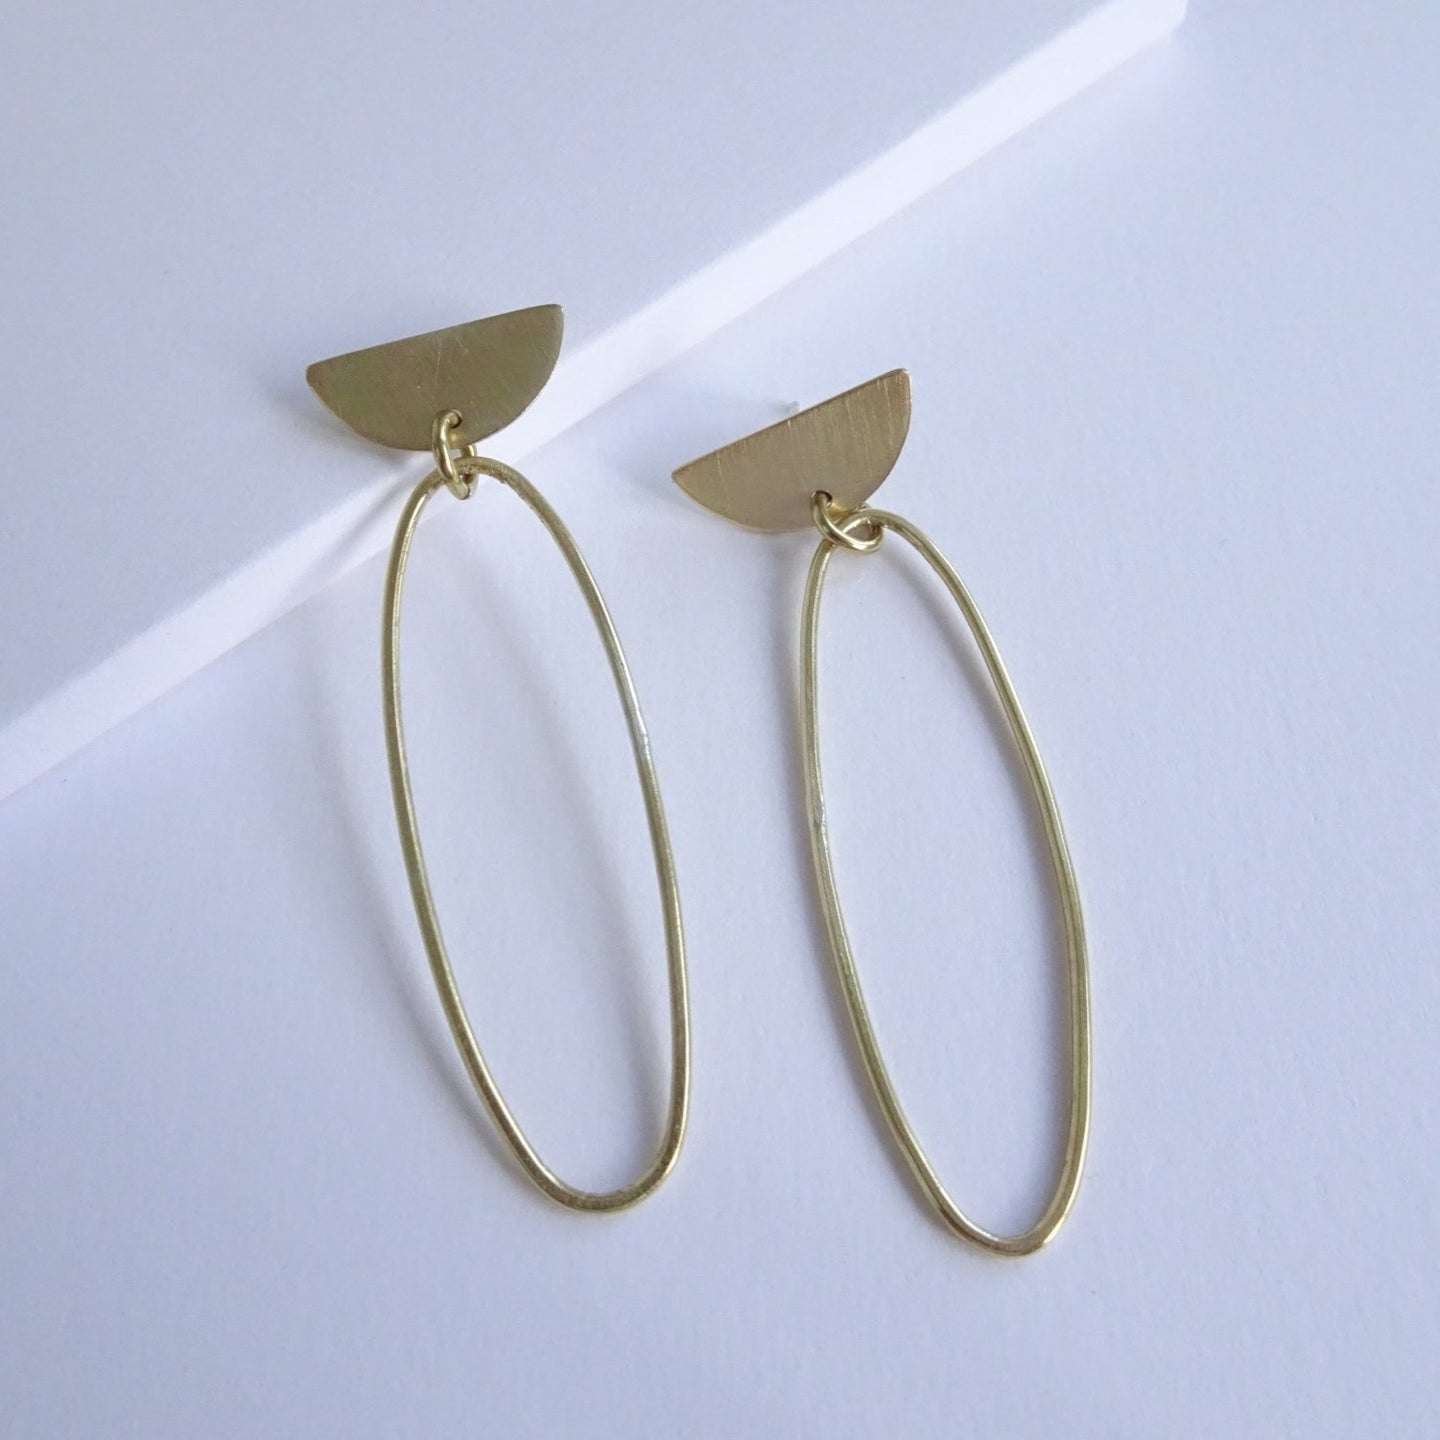 Oval D Top Statement Earrings - THE HOME OF SUSTAINABLE THINGS